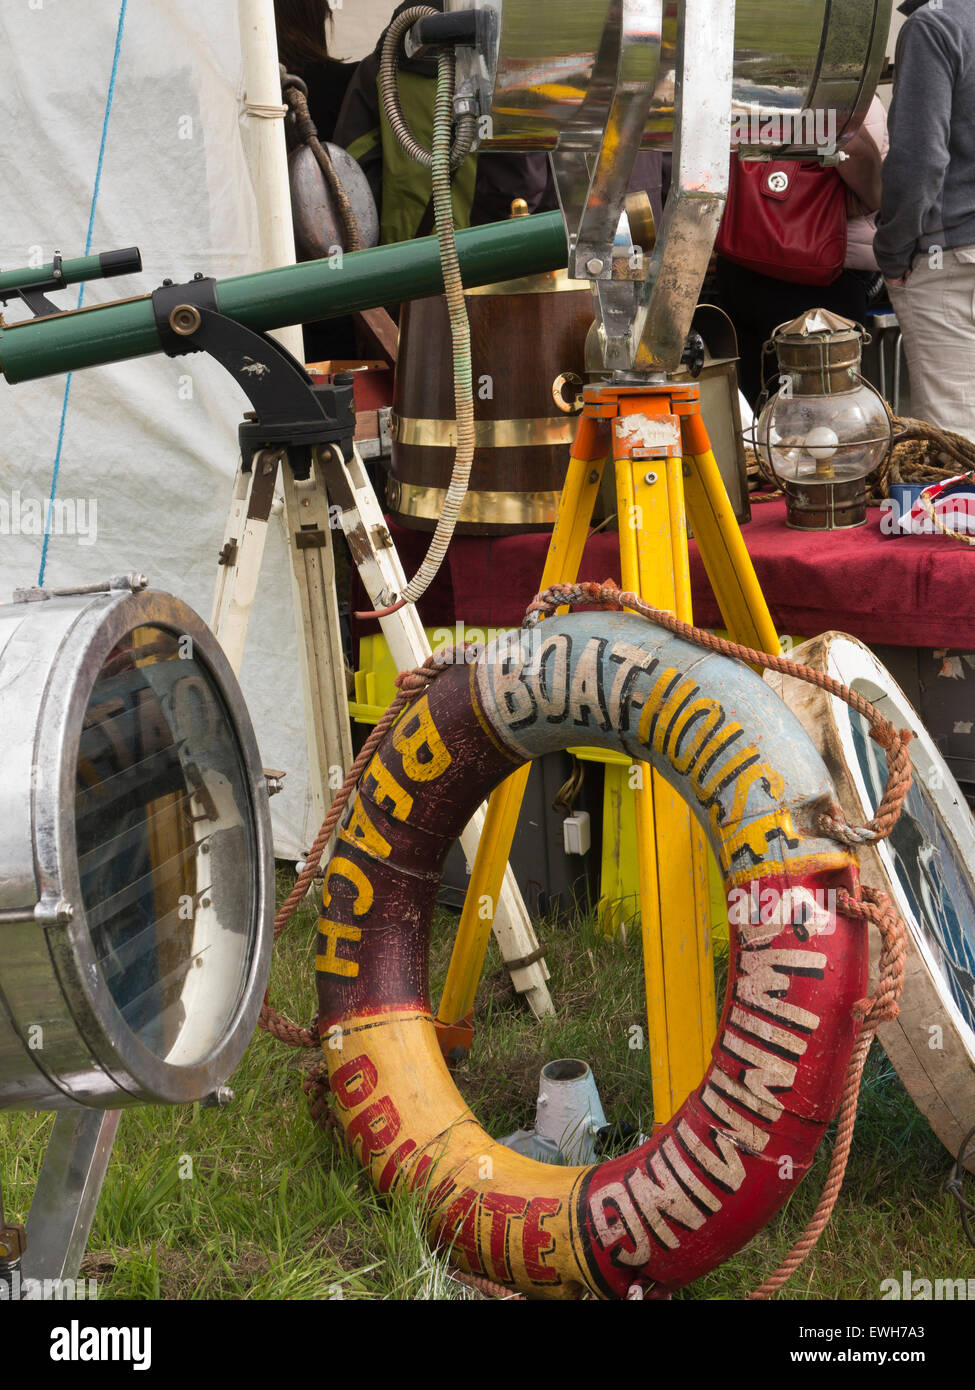 UK, England, Cheshire, Tabley, Cheshire Showground, Decorative Home & Salvage Show, stalls selling antiques, - Stock Image